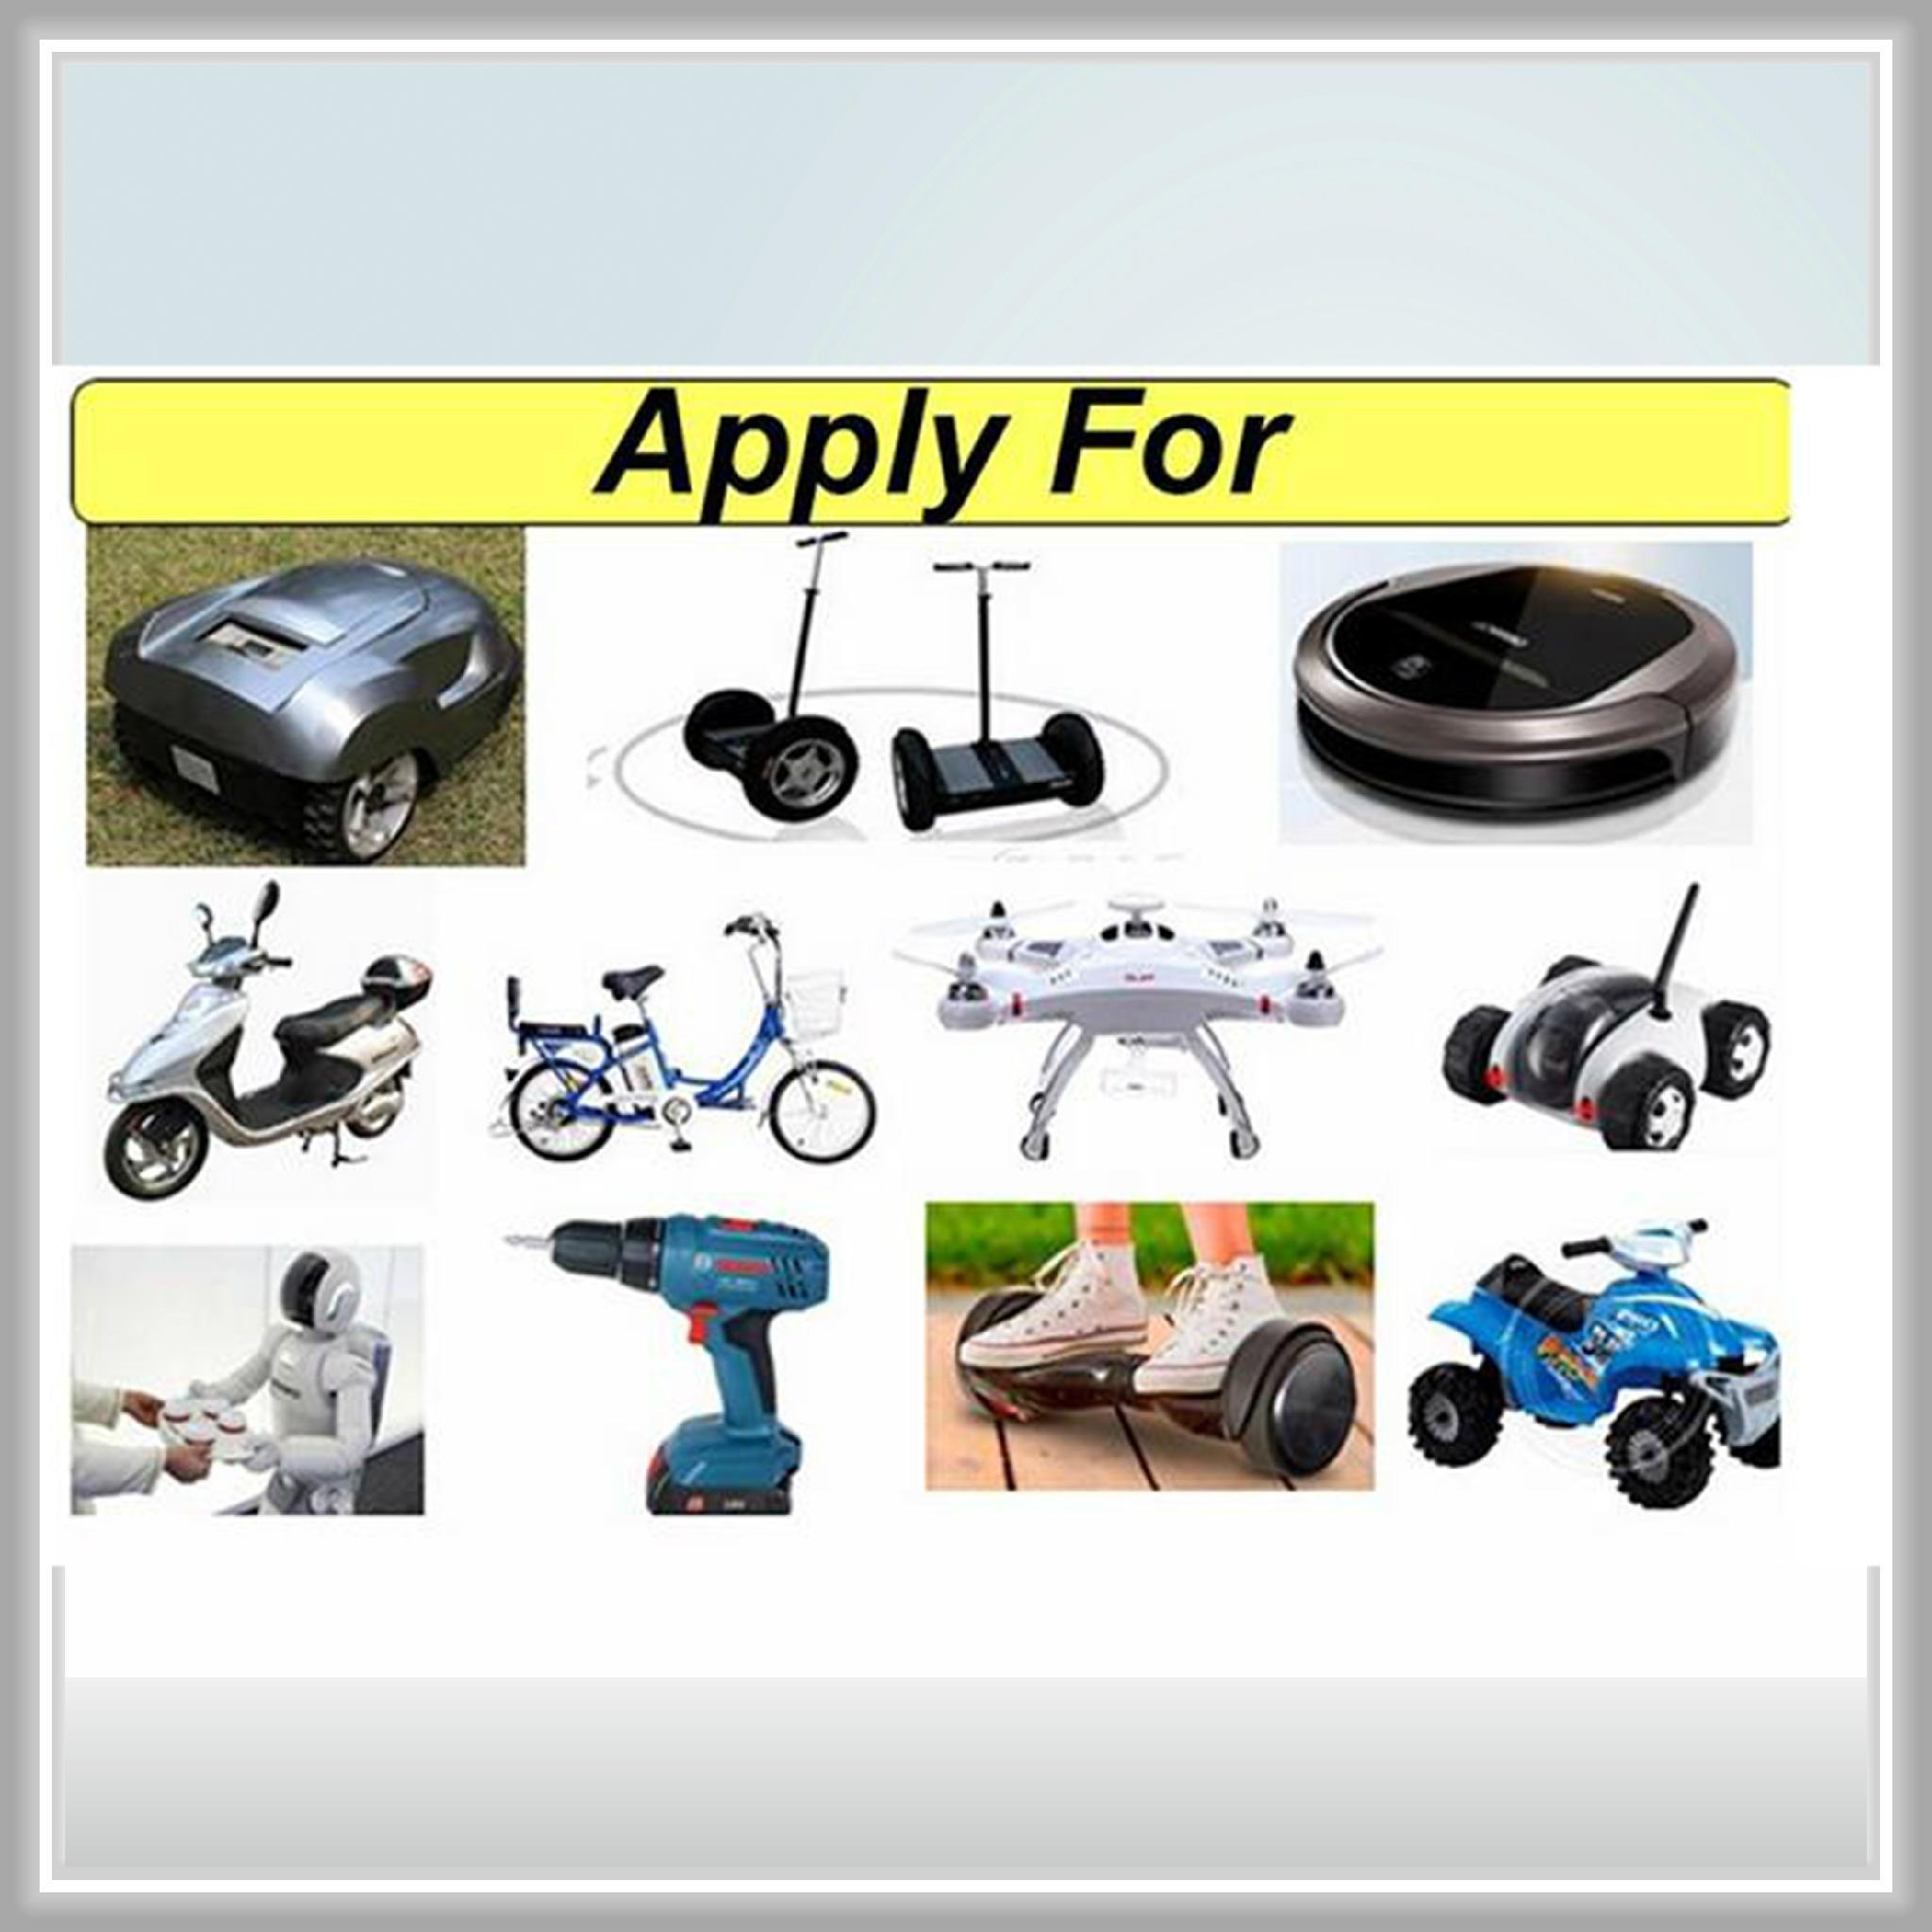 7S 24V Robotic Lawn Mower Charger 29.4V 2A with UL GS PSE CE 12